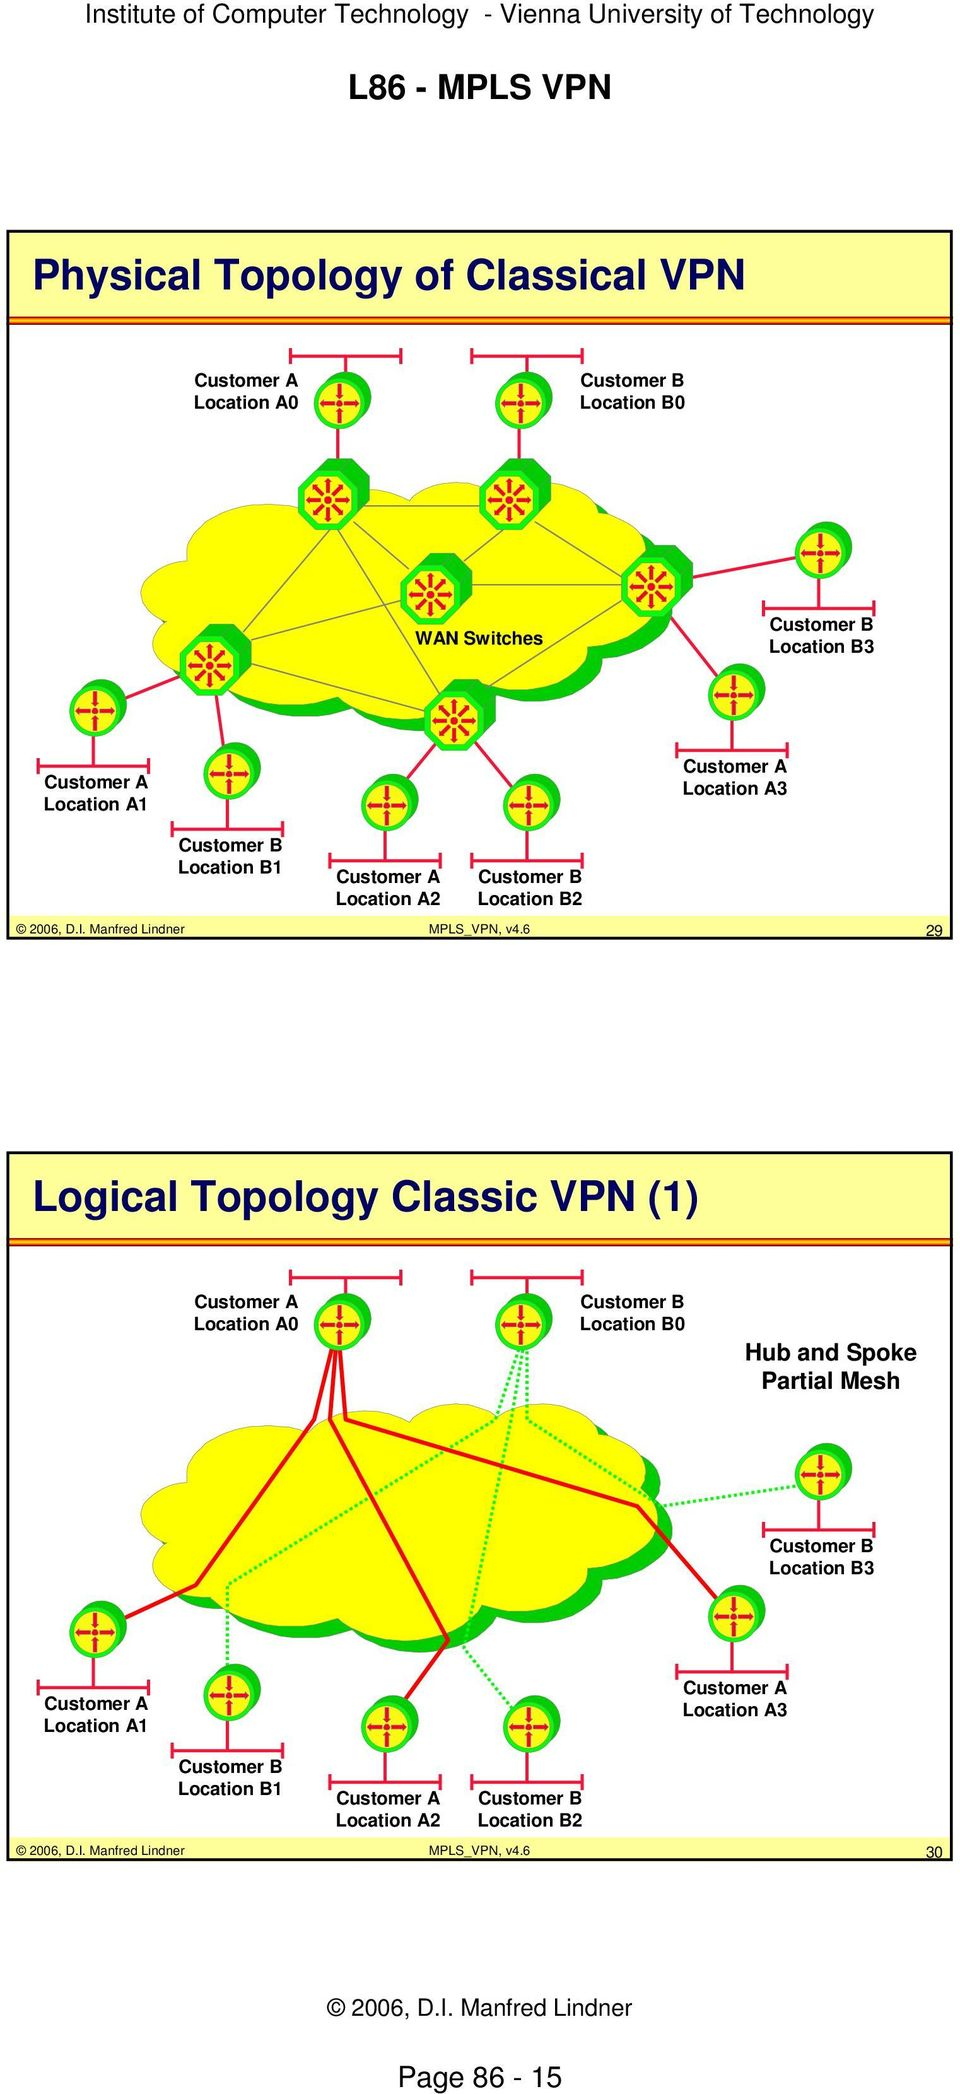 6 29 Logical Topology Classic VPN (1) Customer A Location A0 Customer B Location B0 Hub and Spoke Partial Mesh Customer B Location